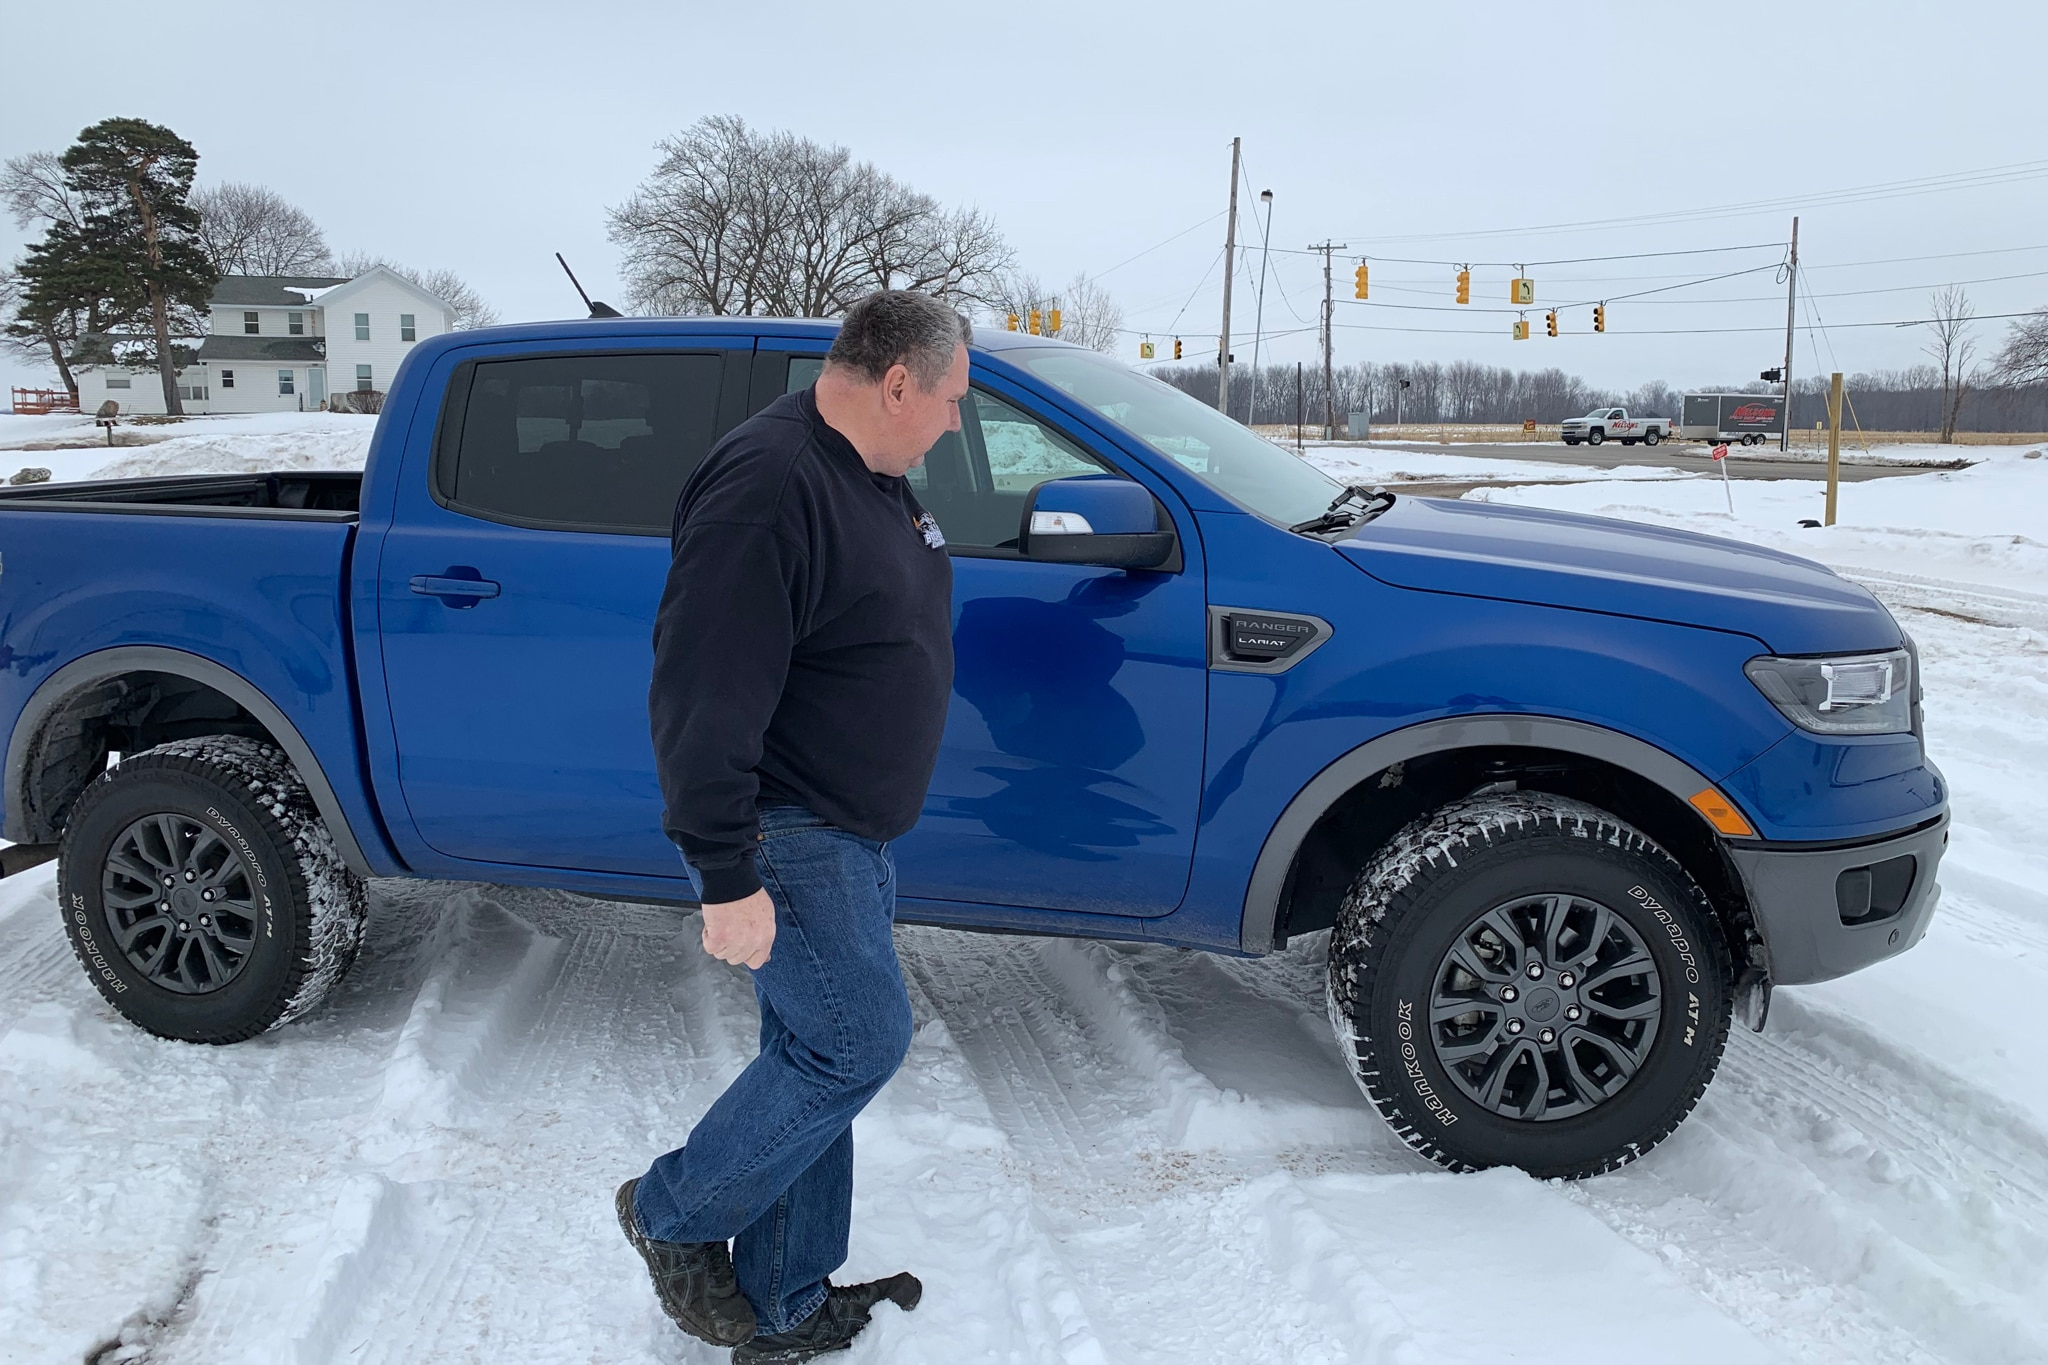 2019 Ford Ranger: What Do Real People Think? | Automobile